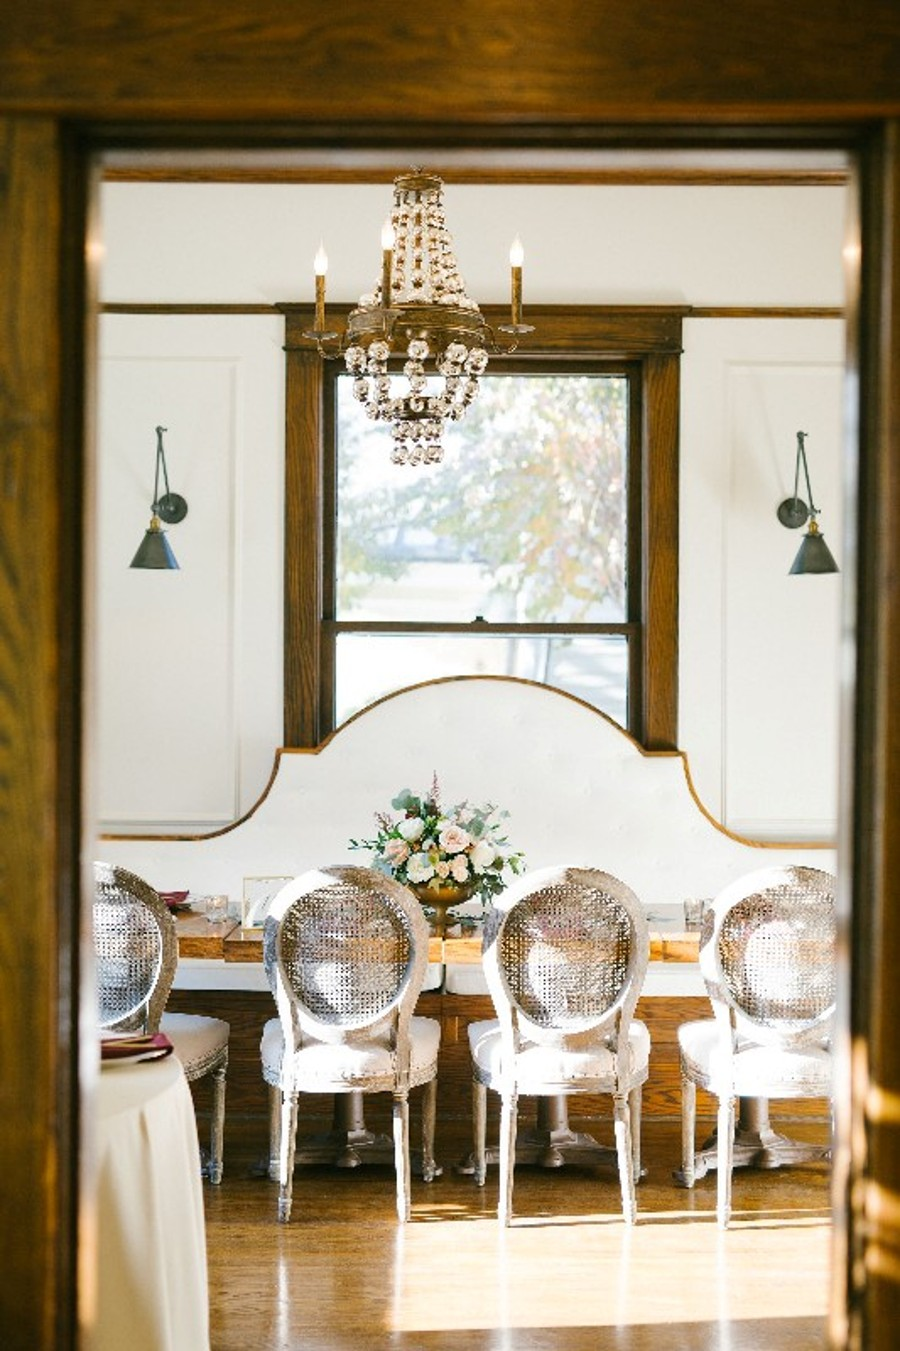 Inside the south parlor Nashville wedding venue CJ's Off the Square